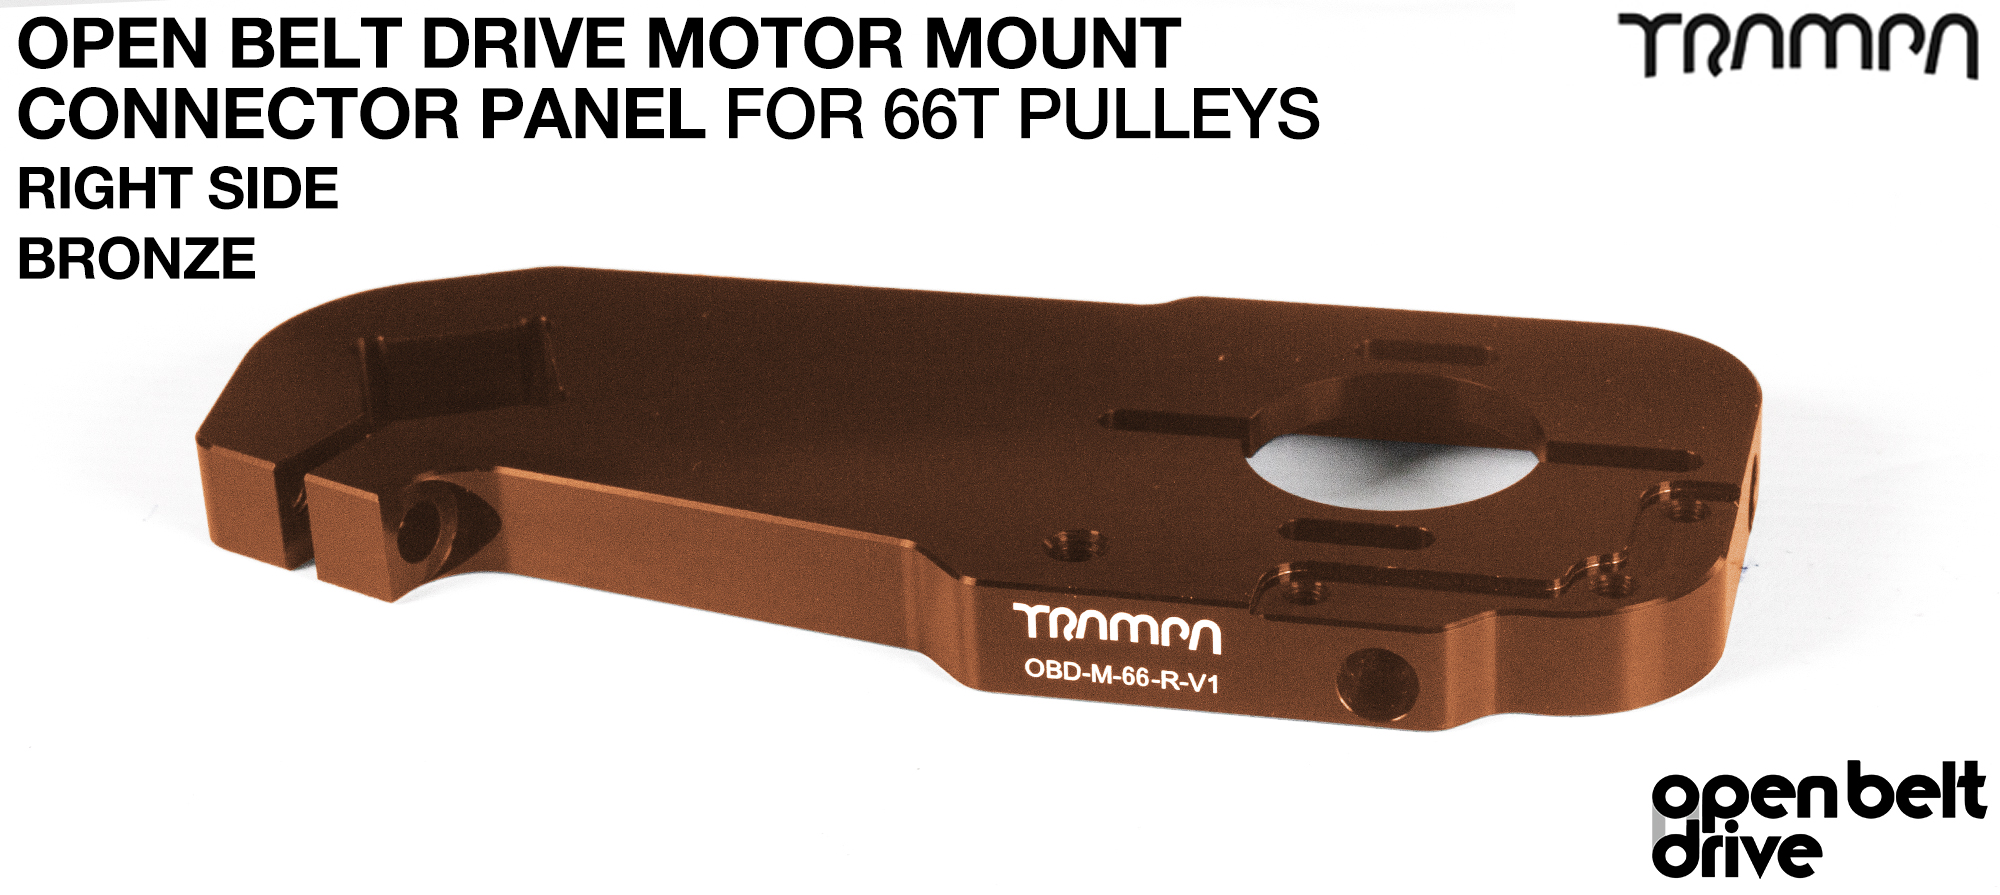 BRONZE 66T GOOFY OBD Motor Mount Connector Panel